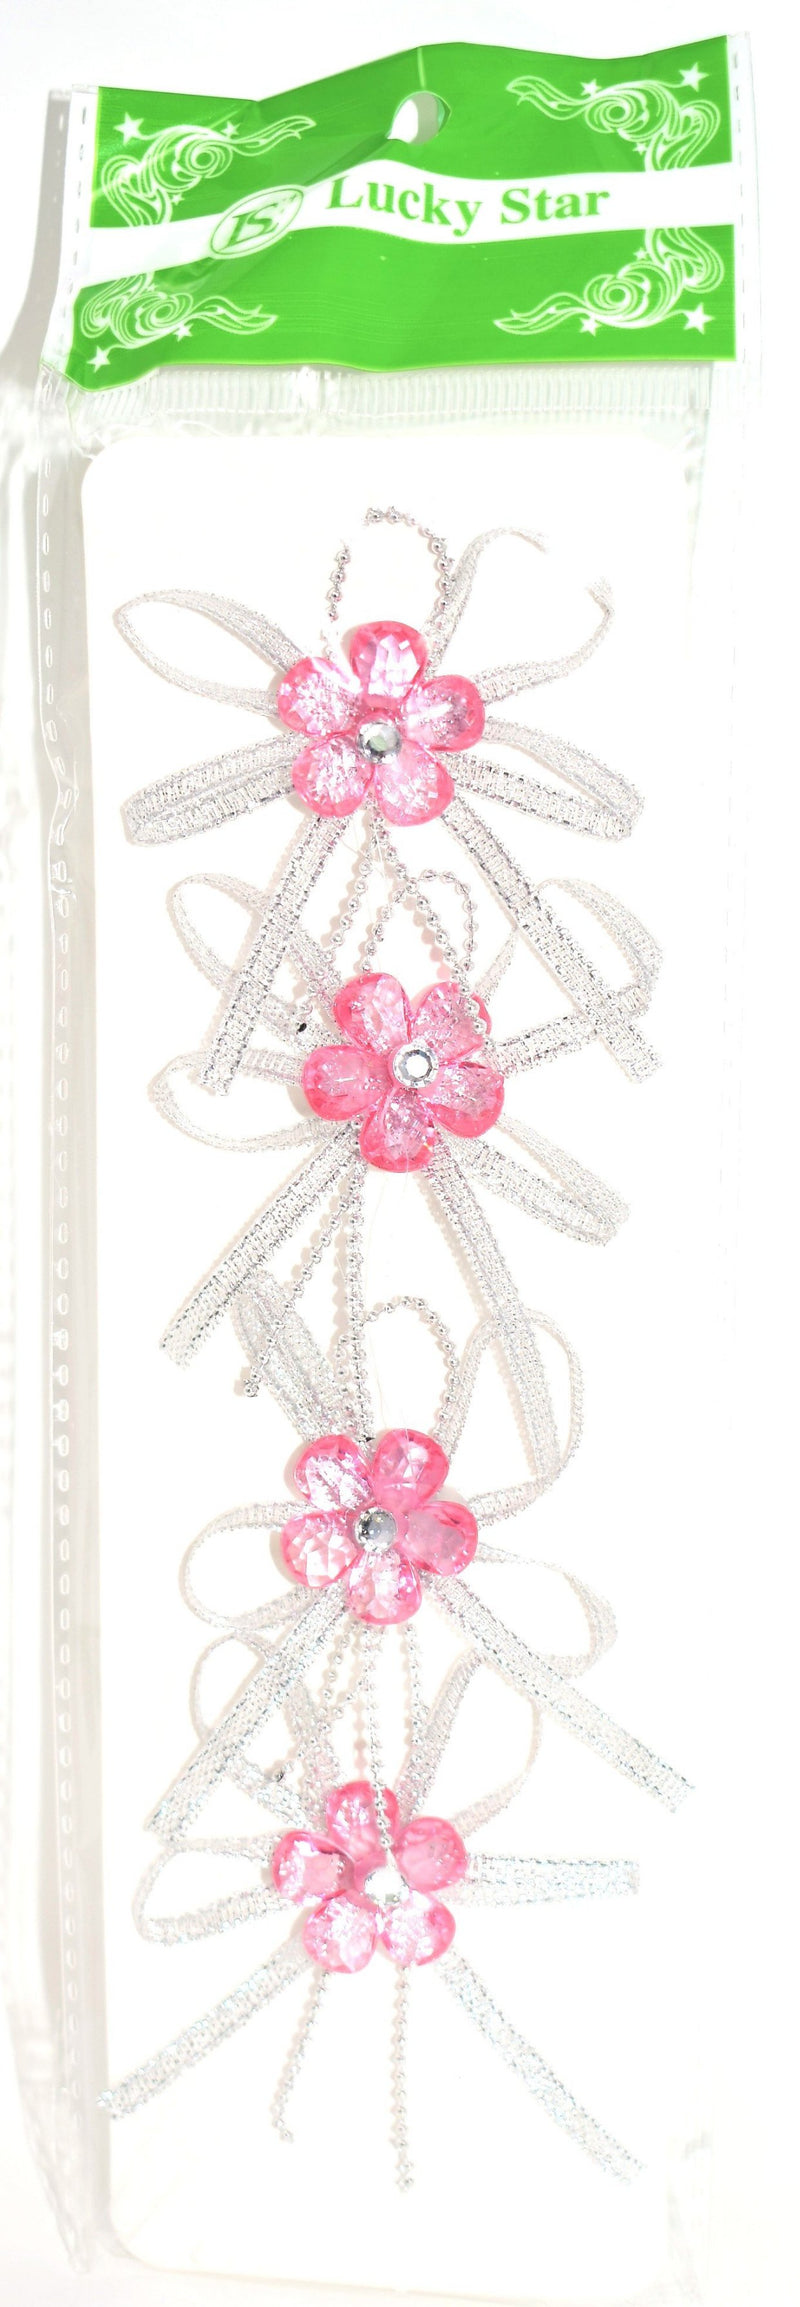 Pre-Tied Ribbon With Acrylic Rhinestone Flower, Pink Color, 4 ct.